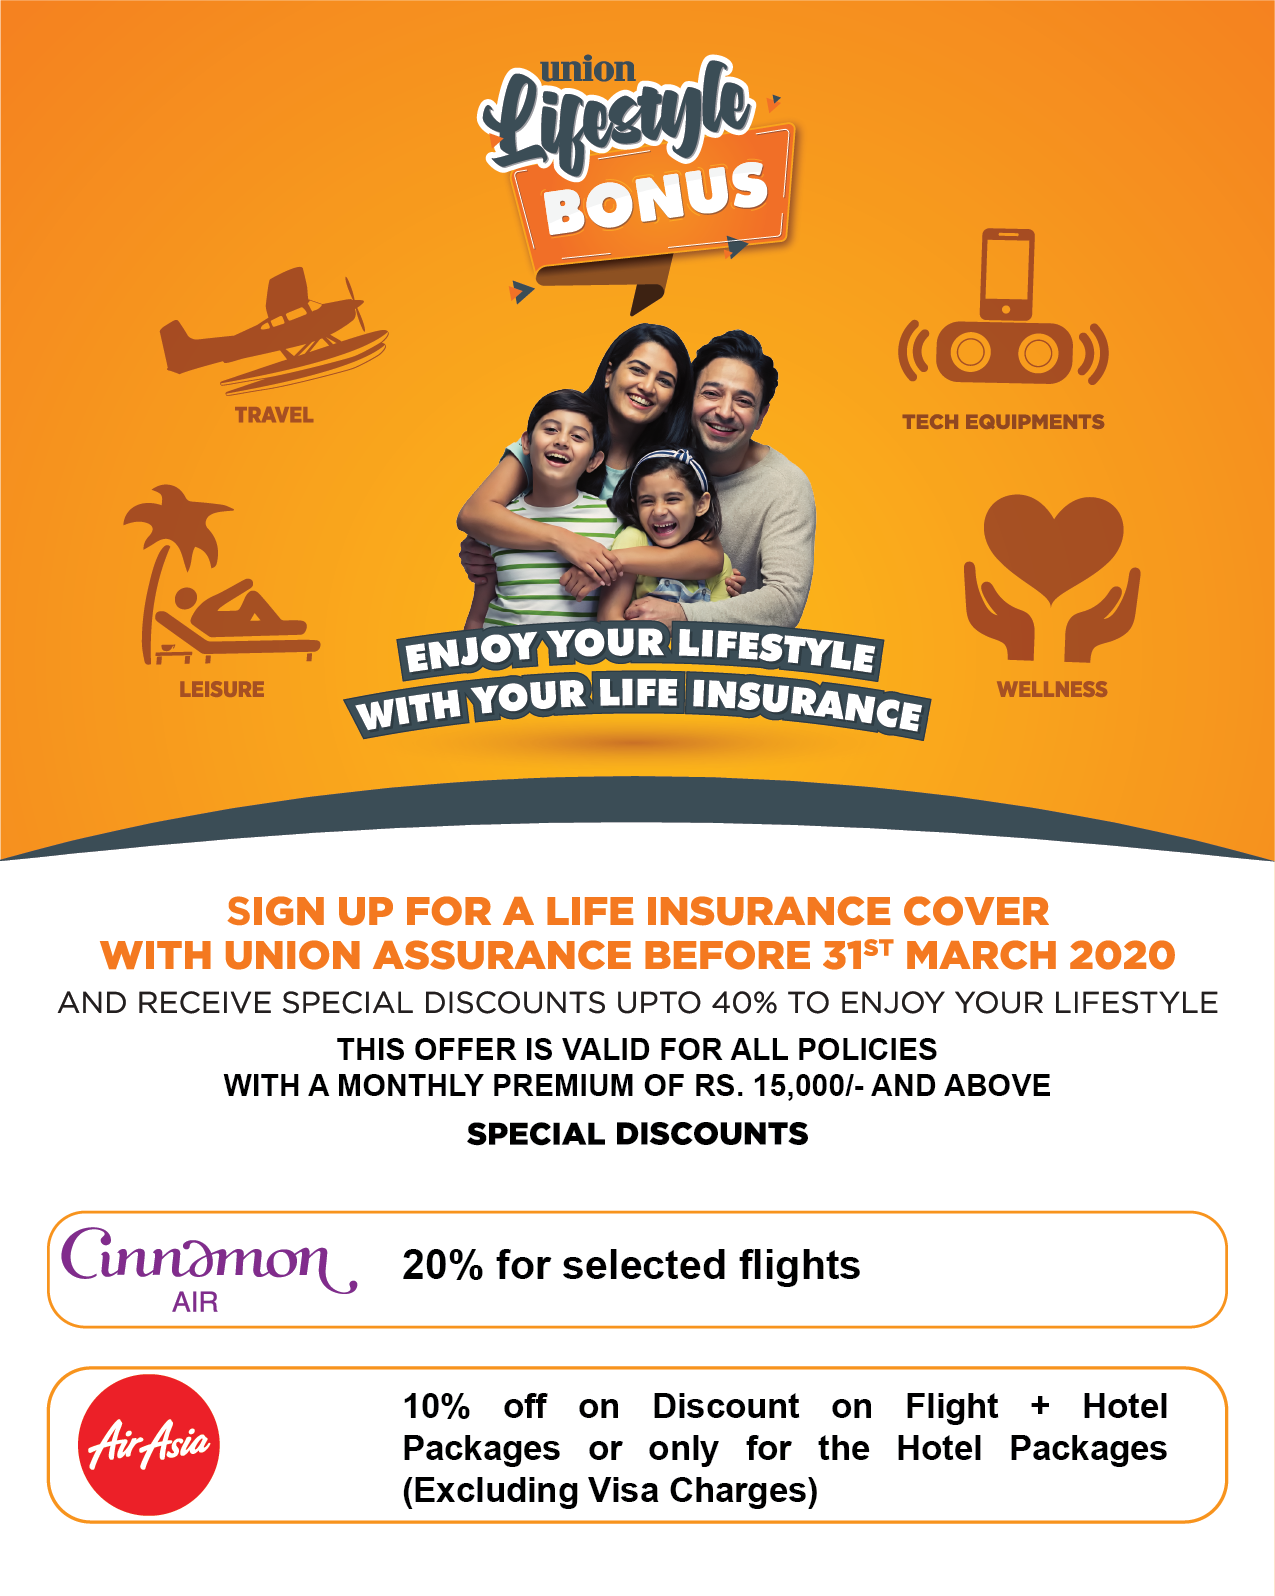 Explore the World with 'Union Lifestyle Bonus' Travel Deals